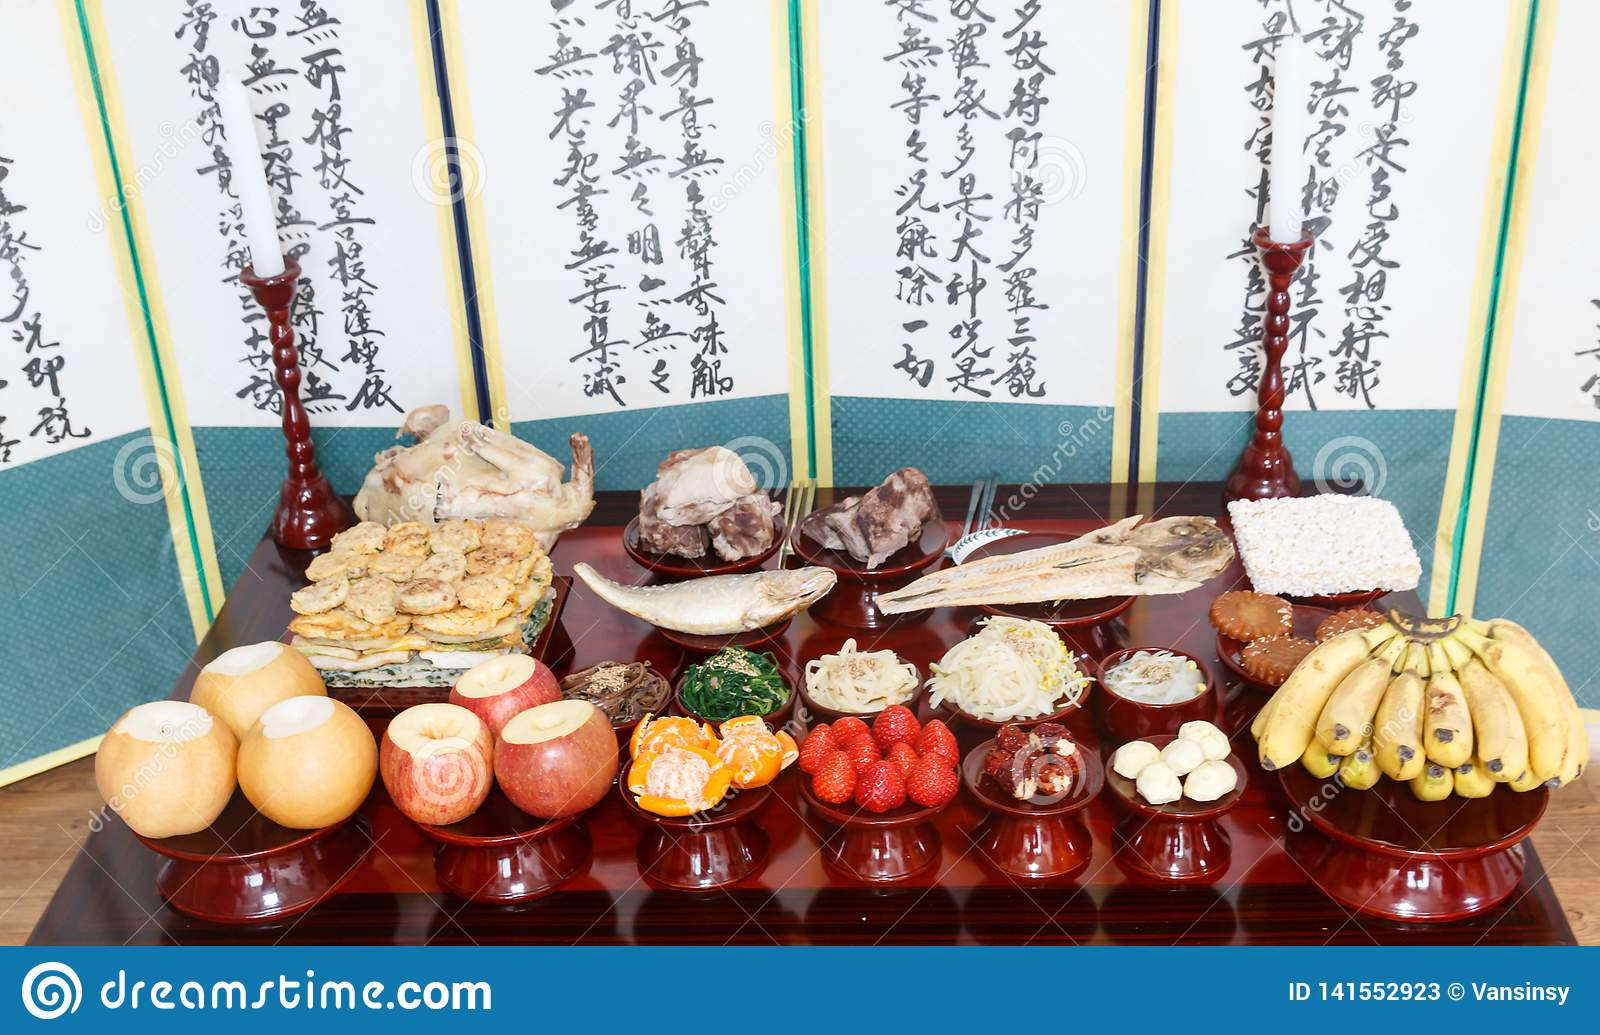 Table Setting With Various Fruits And Foods For Korean